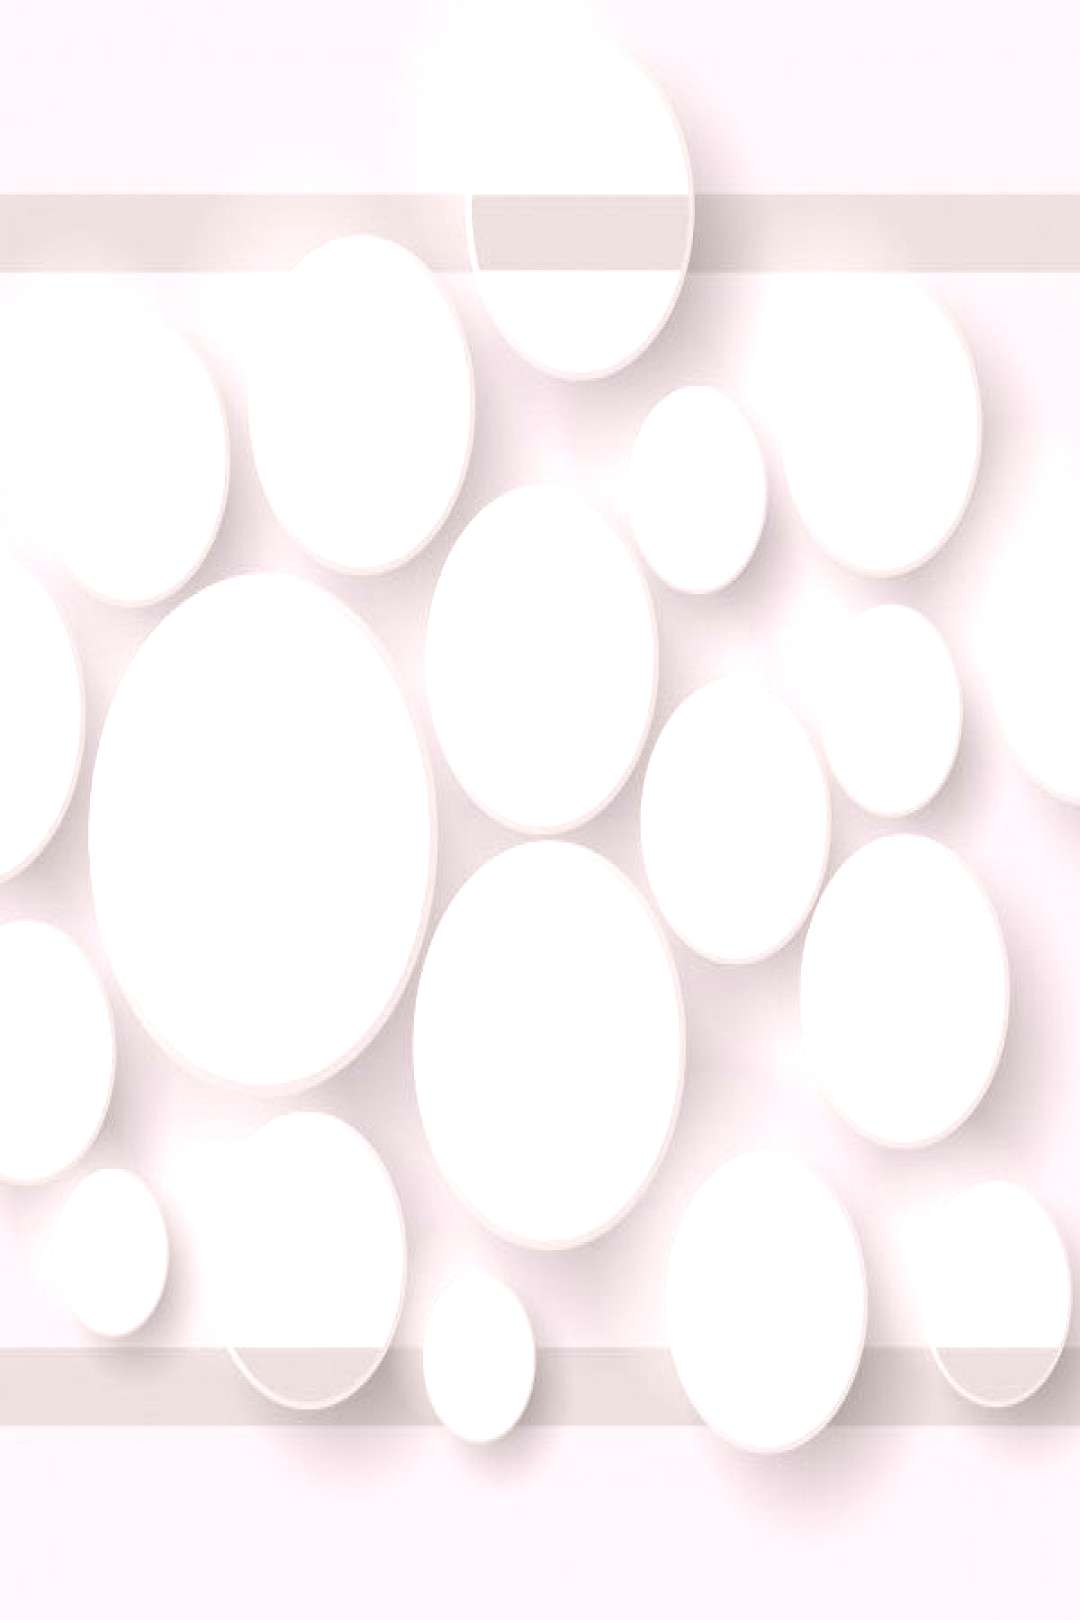 White circles background - Stock Vector ,